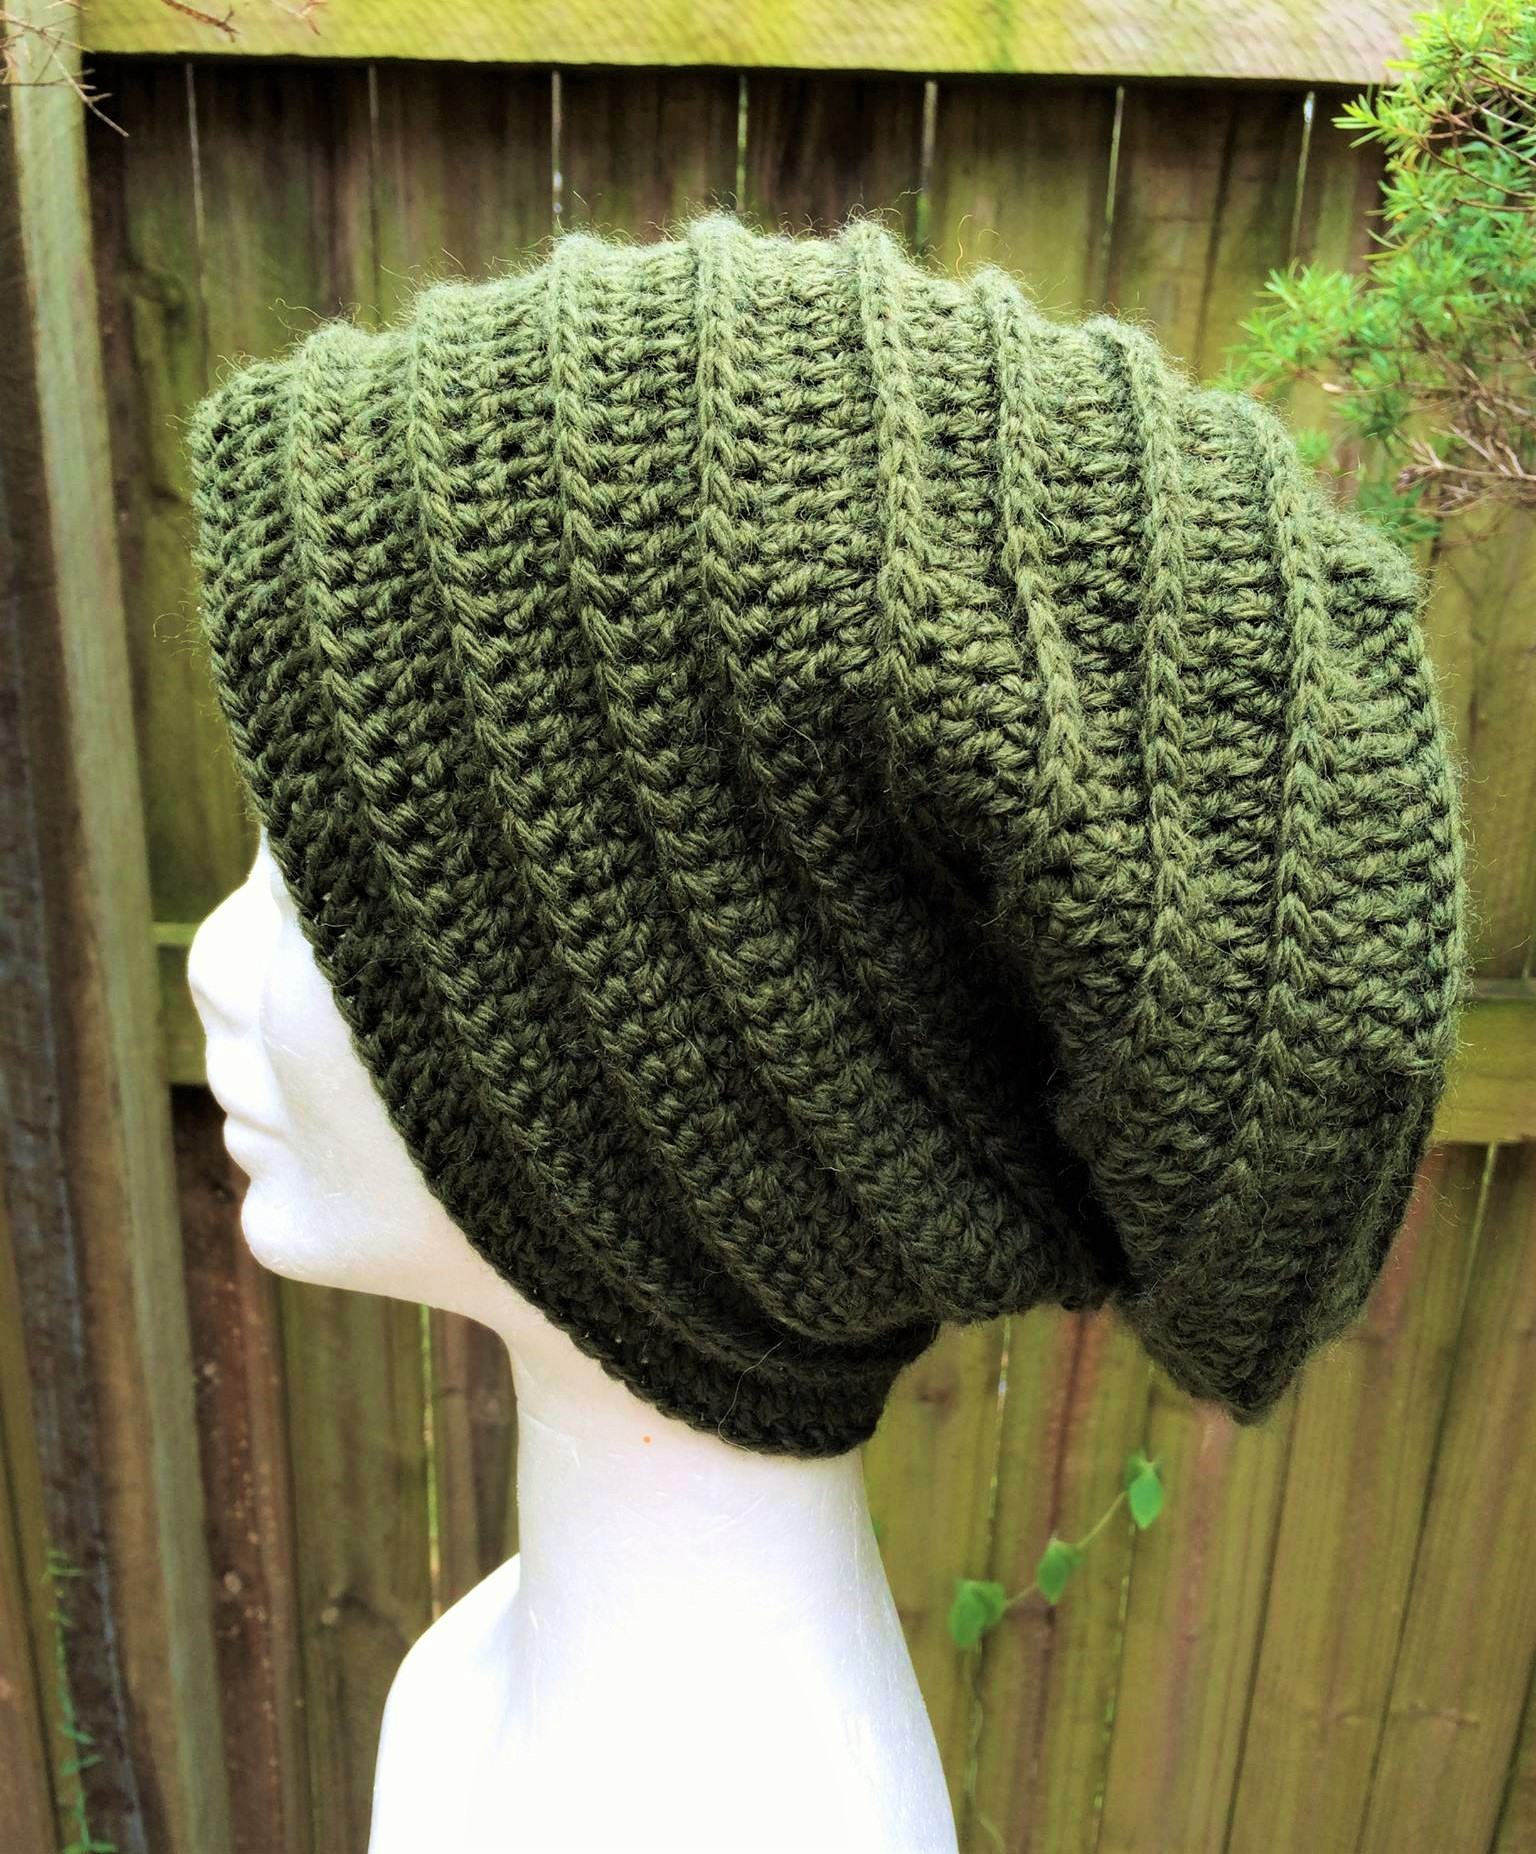 bb6e73b7f3d15 Crocheted Ribbed Beanie Pattern - Easy to Intermediate - Jacqstar ...